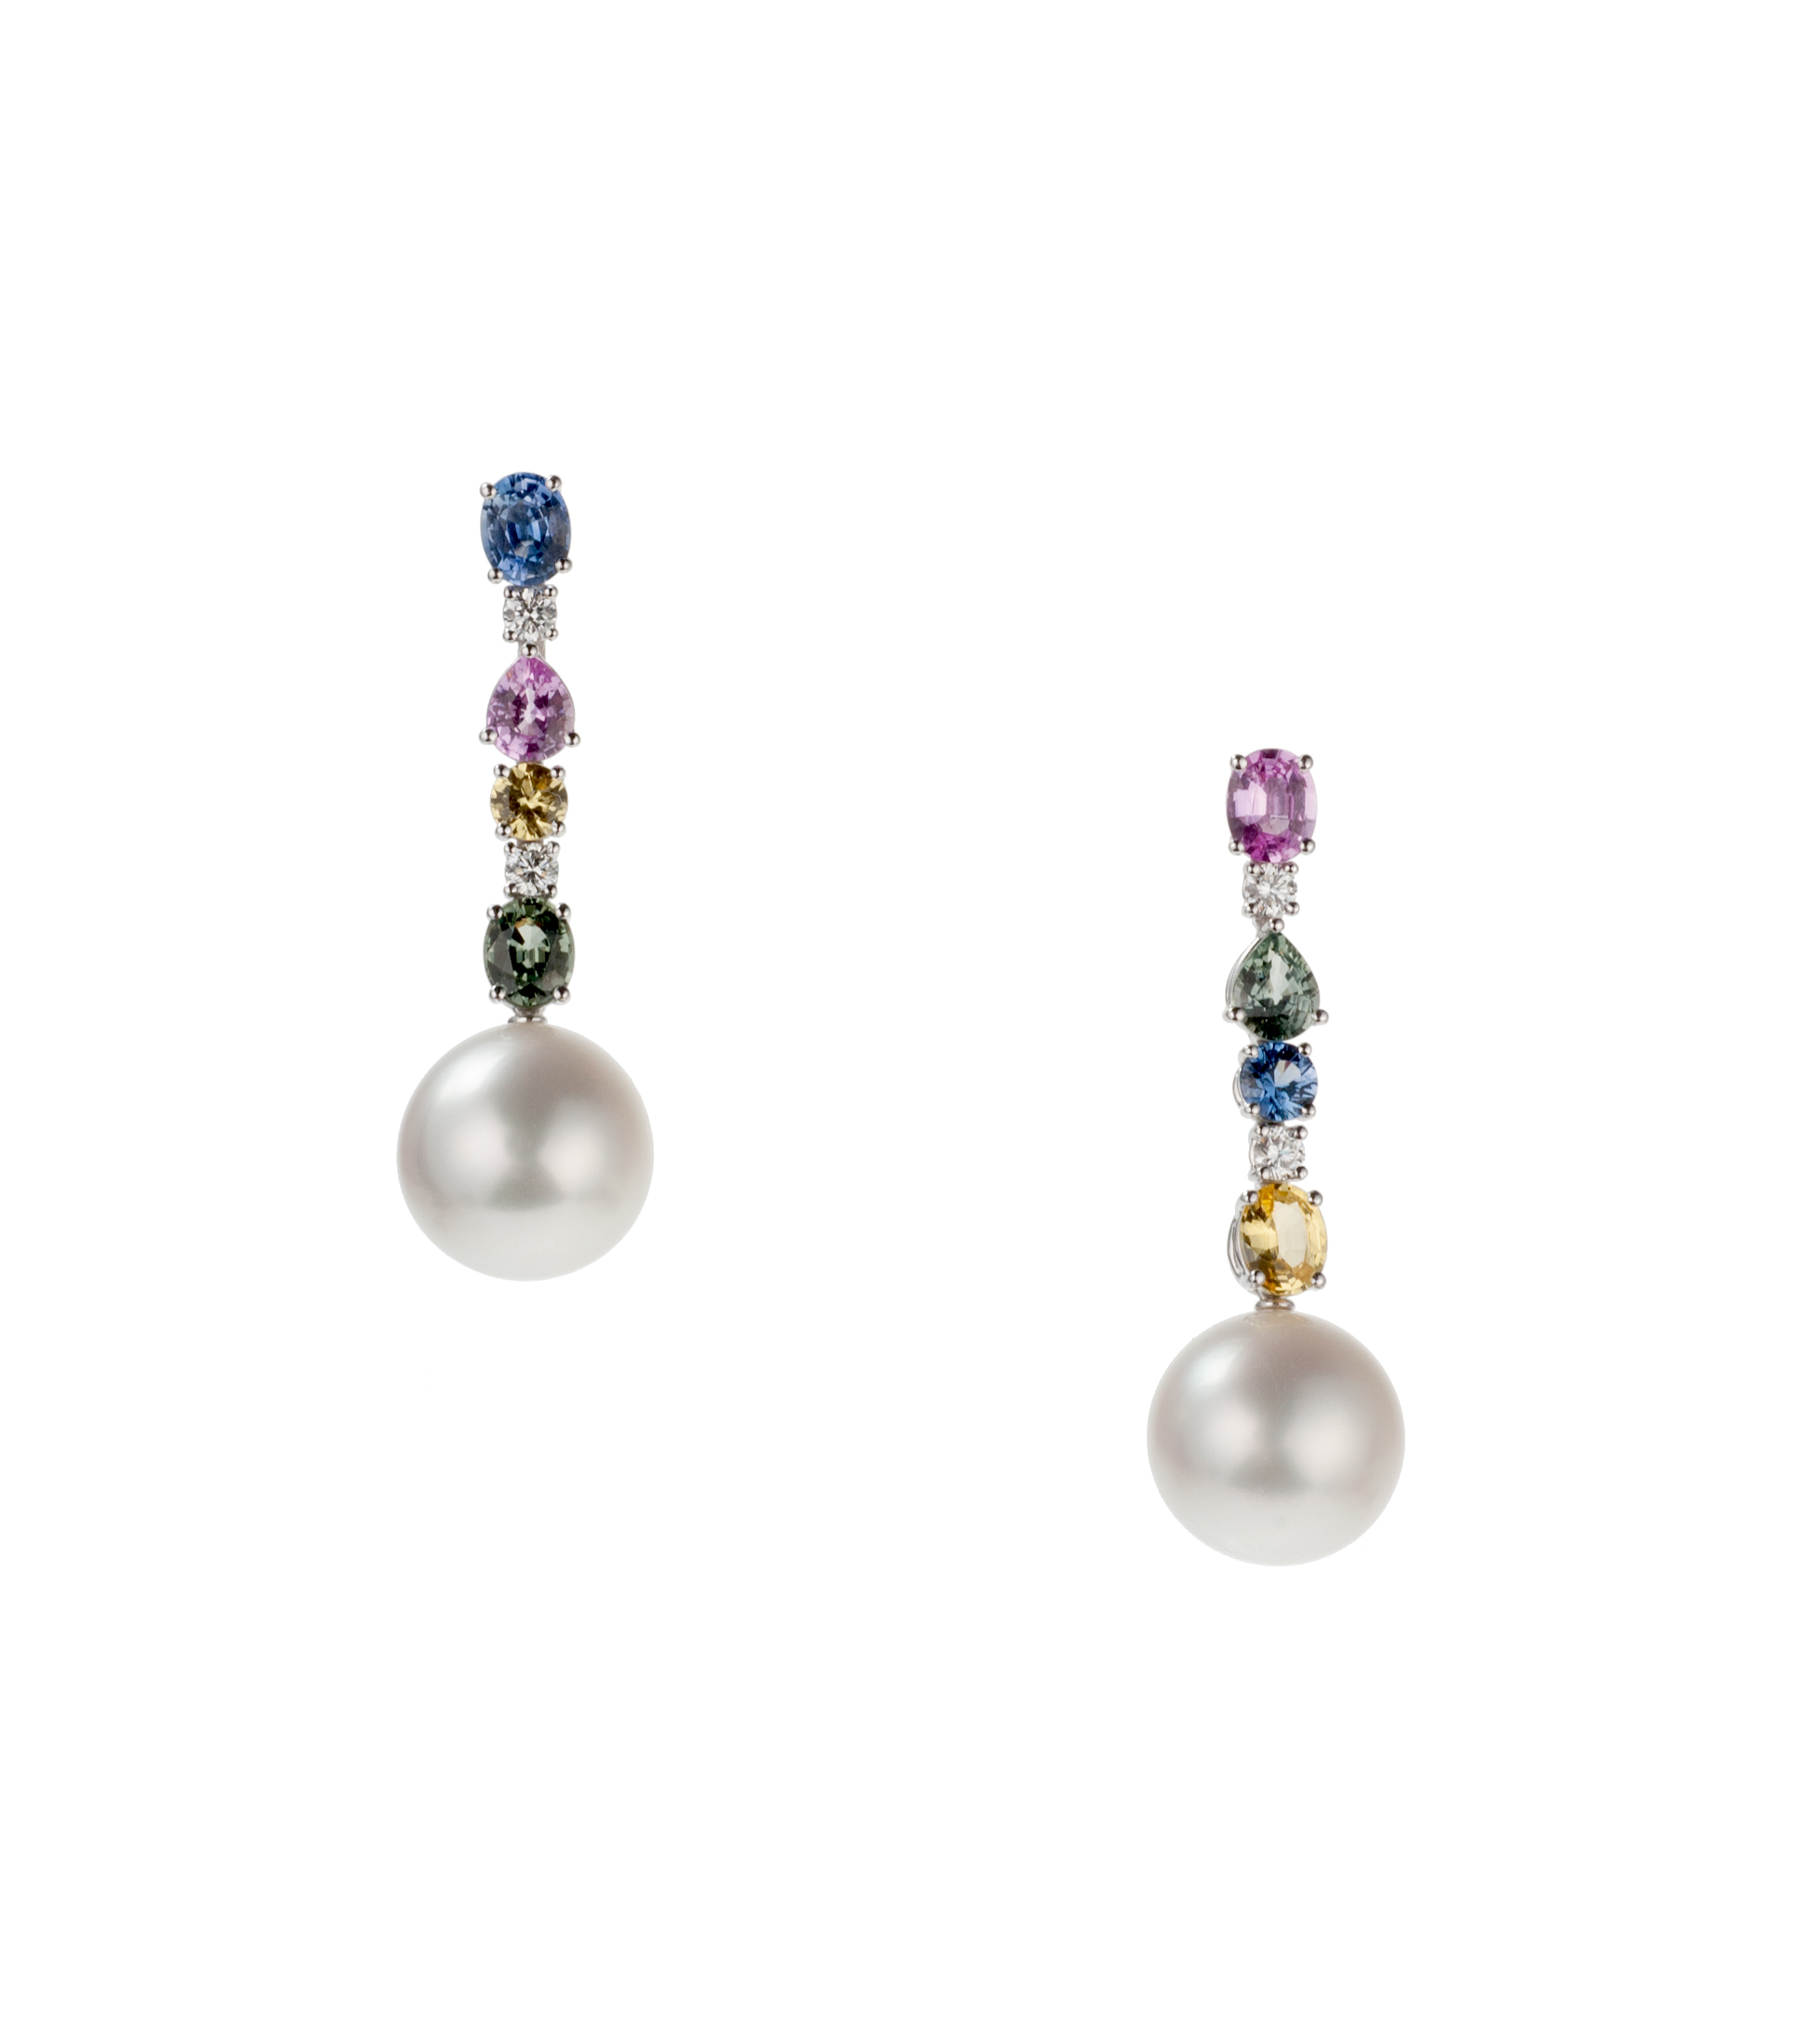 Schoeffel pearl and multi-colored sapphire earrings